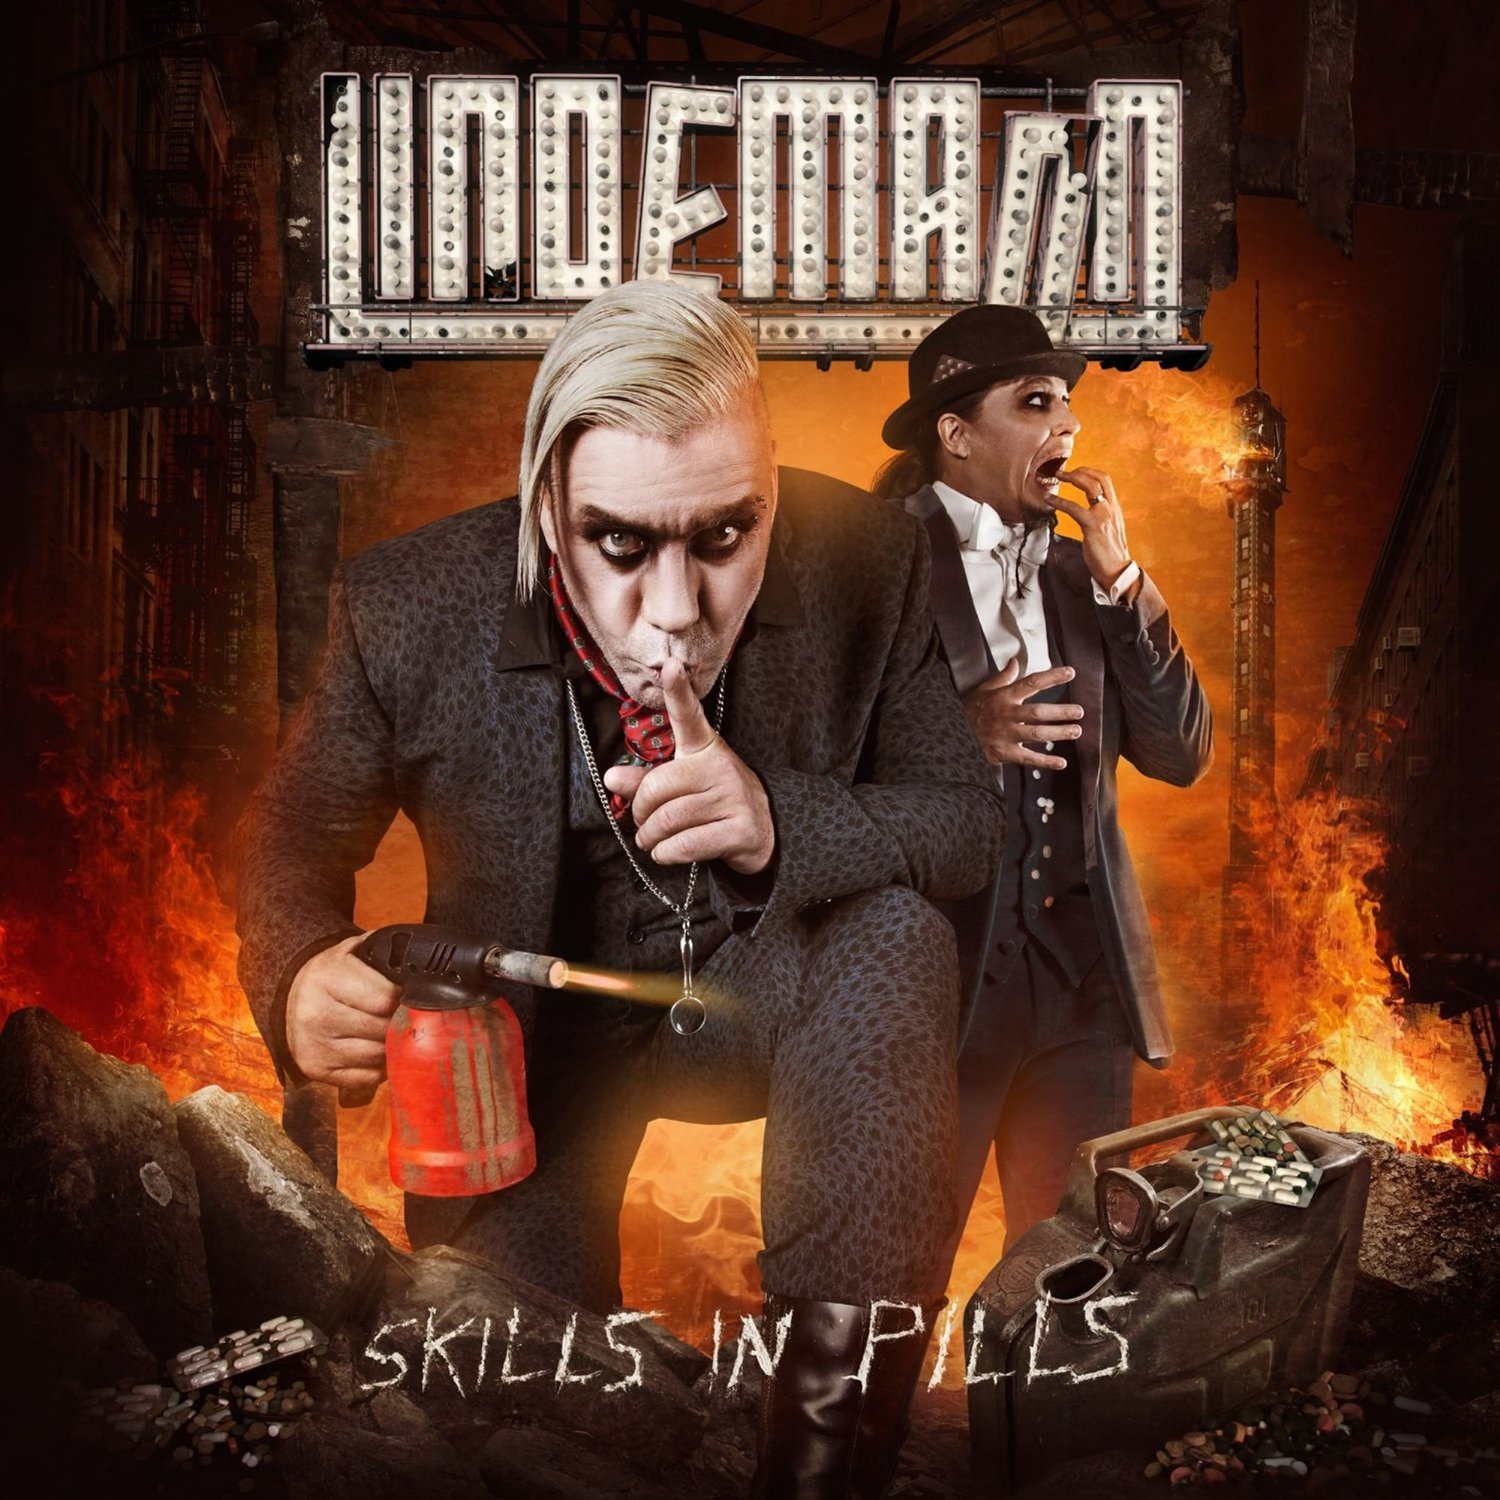 Lindemann: Skills in Pills (2015) Book Cover